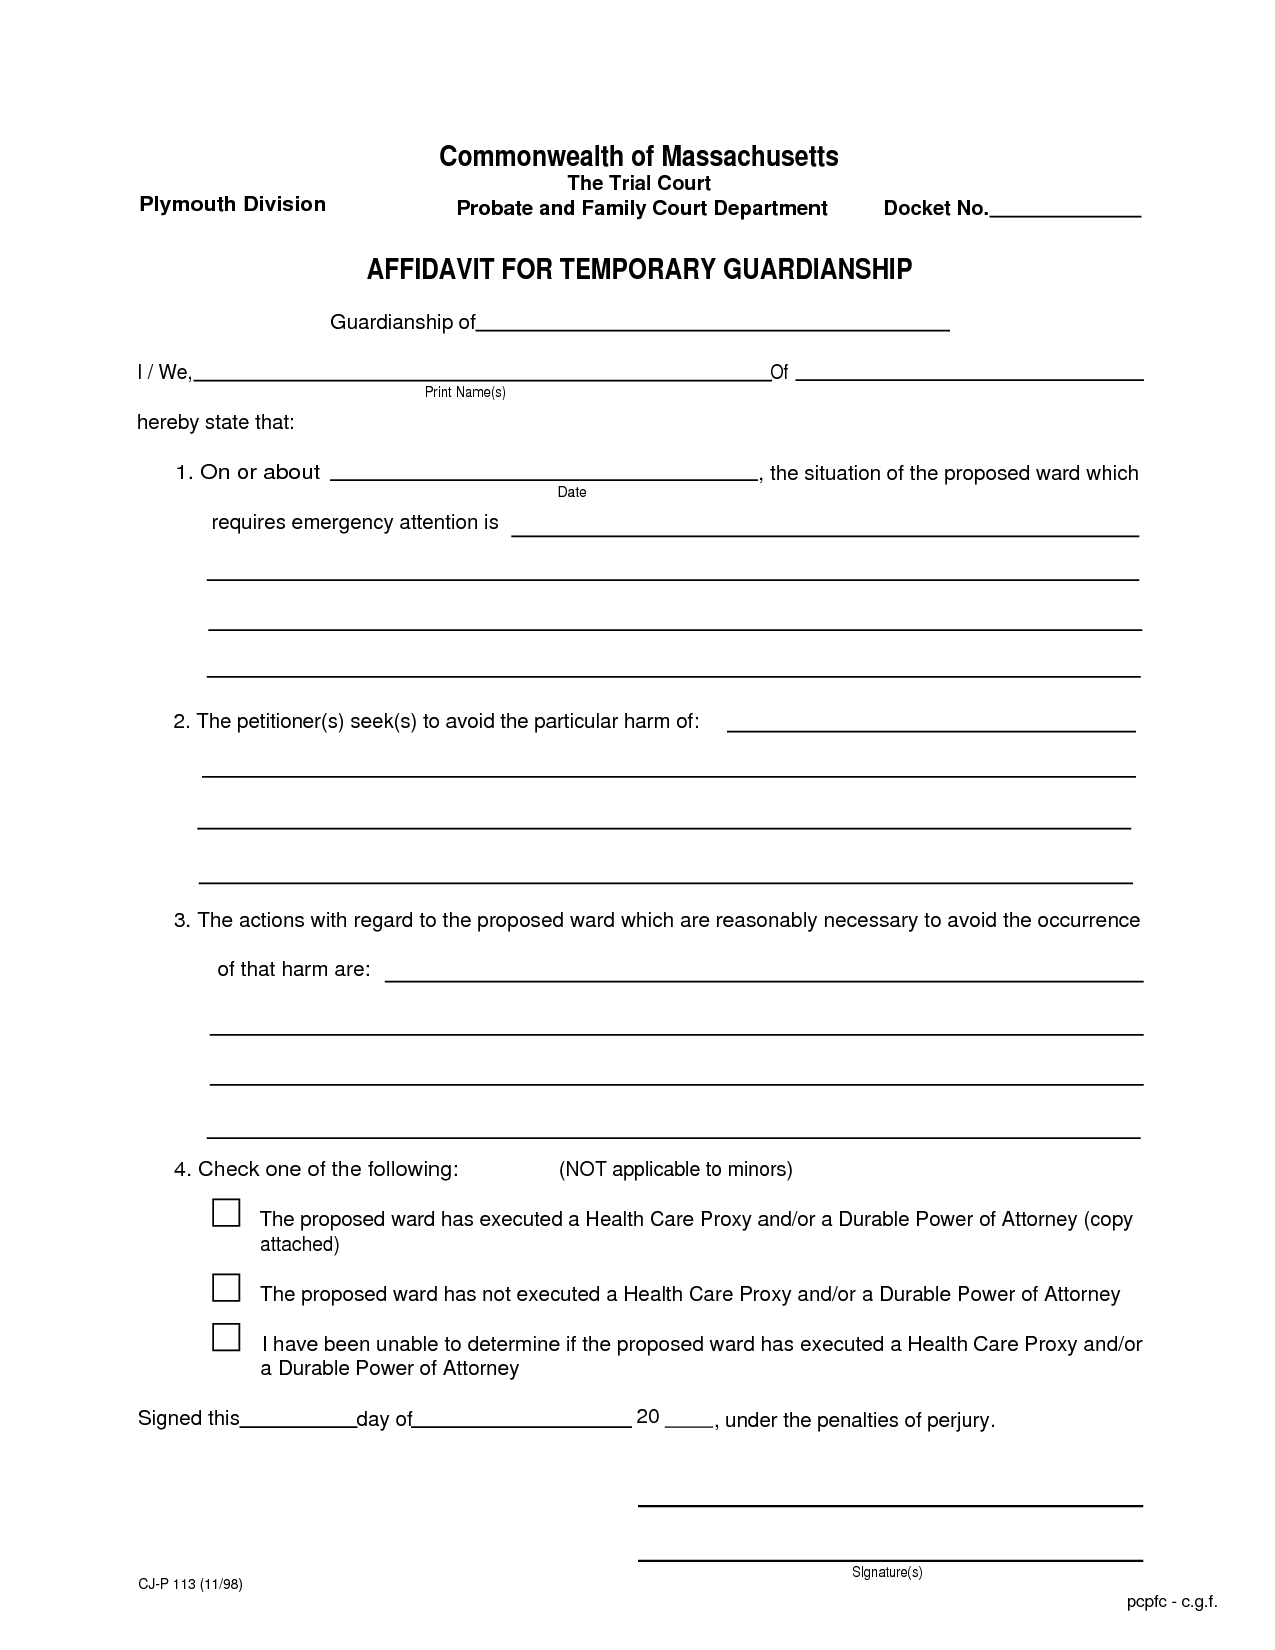 Temporary Custody Letter Template - How to Write A Letter for Guardianship Letter format formal